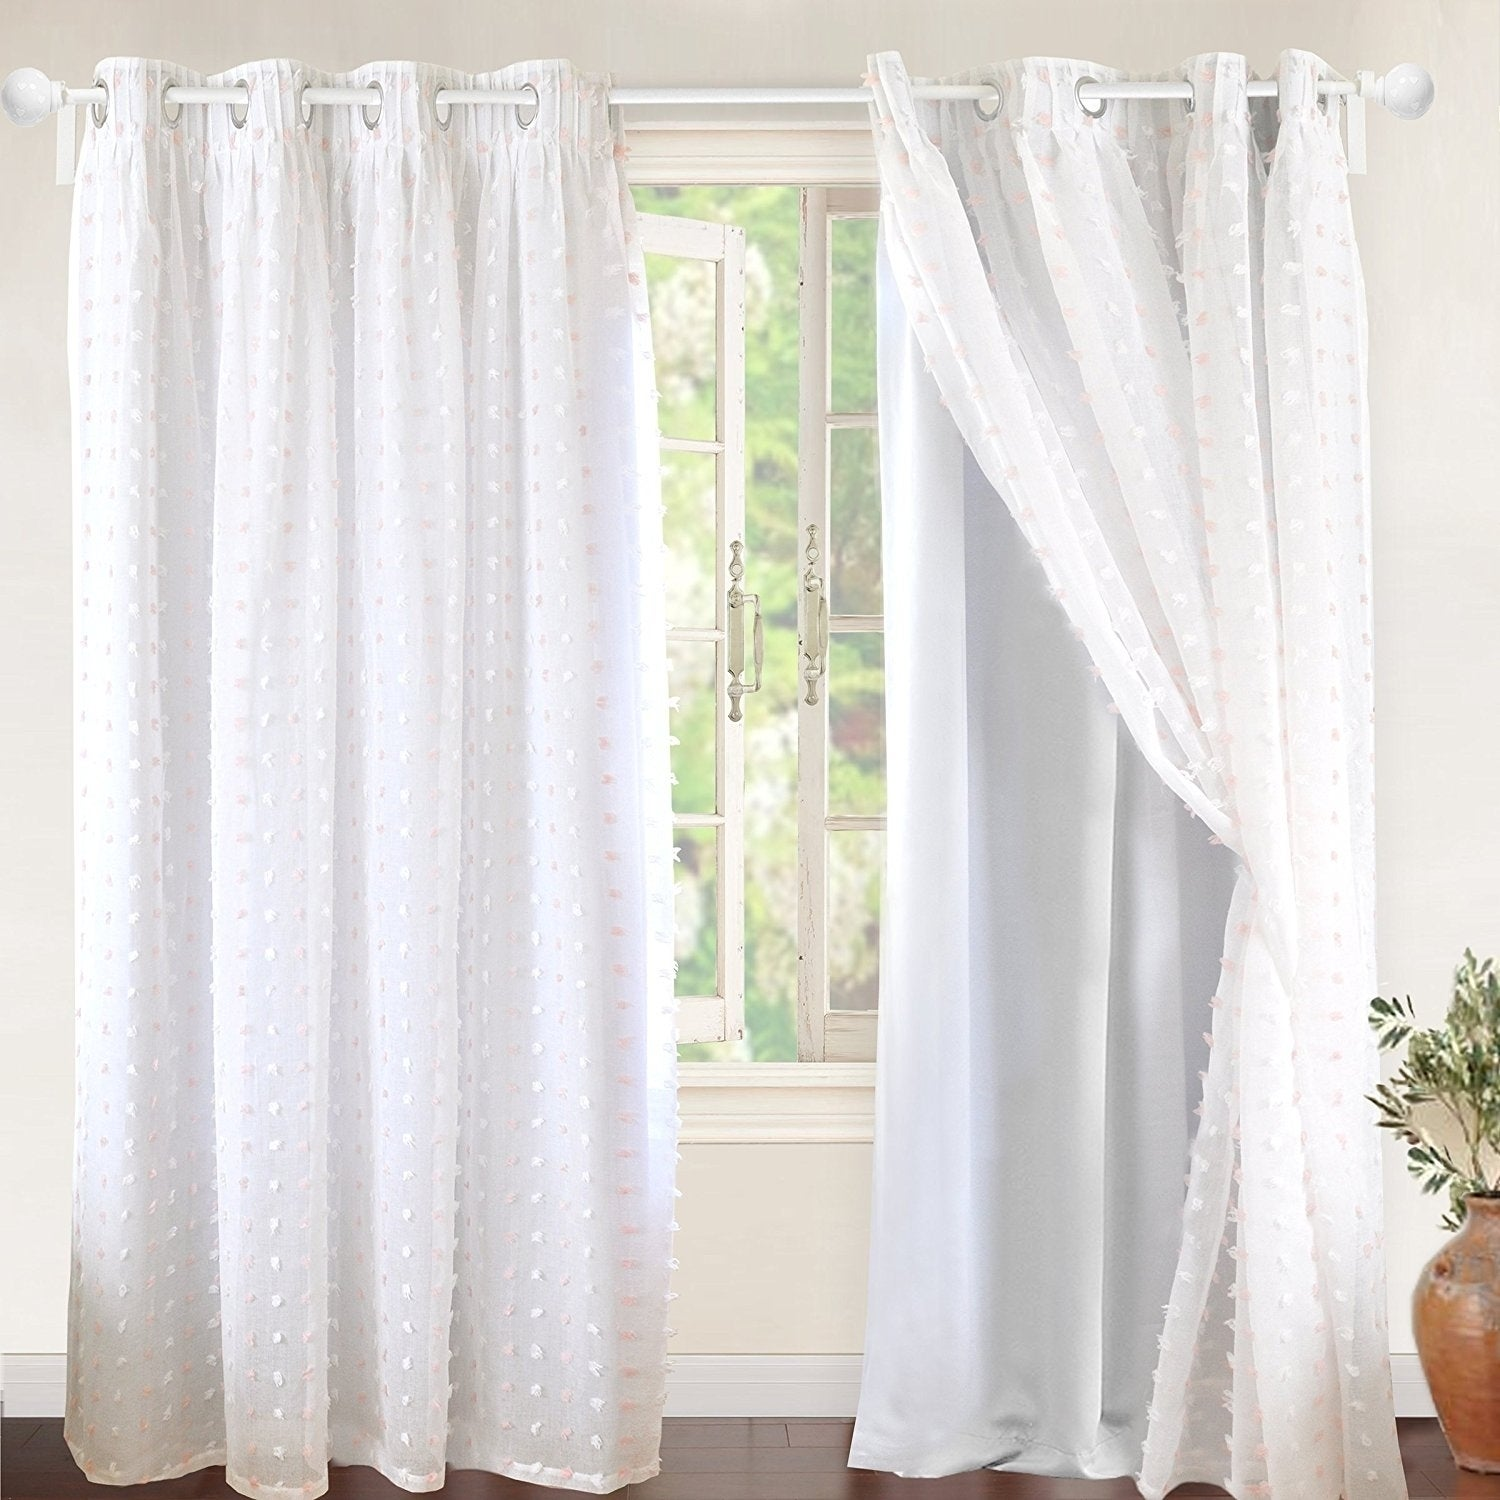 Driftaway Lily White Voile Sheer Blackout Curtain Liner Single Panel 52 W X 84 L Free Shipping On Orders Over 45 19215831